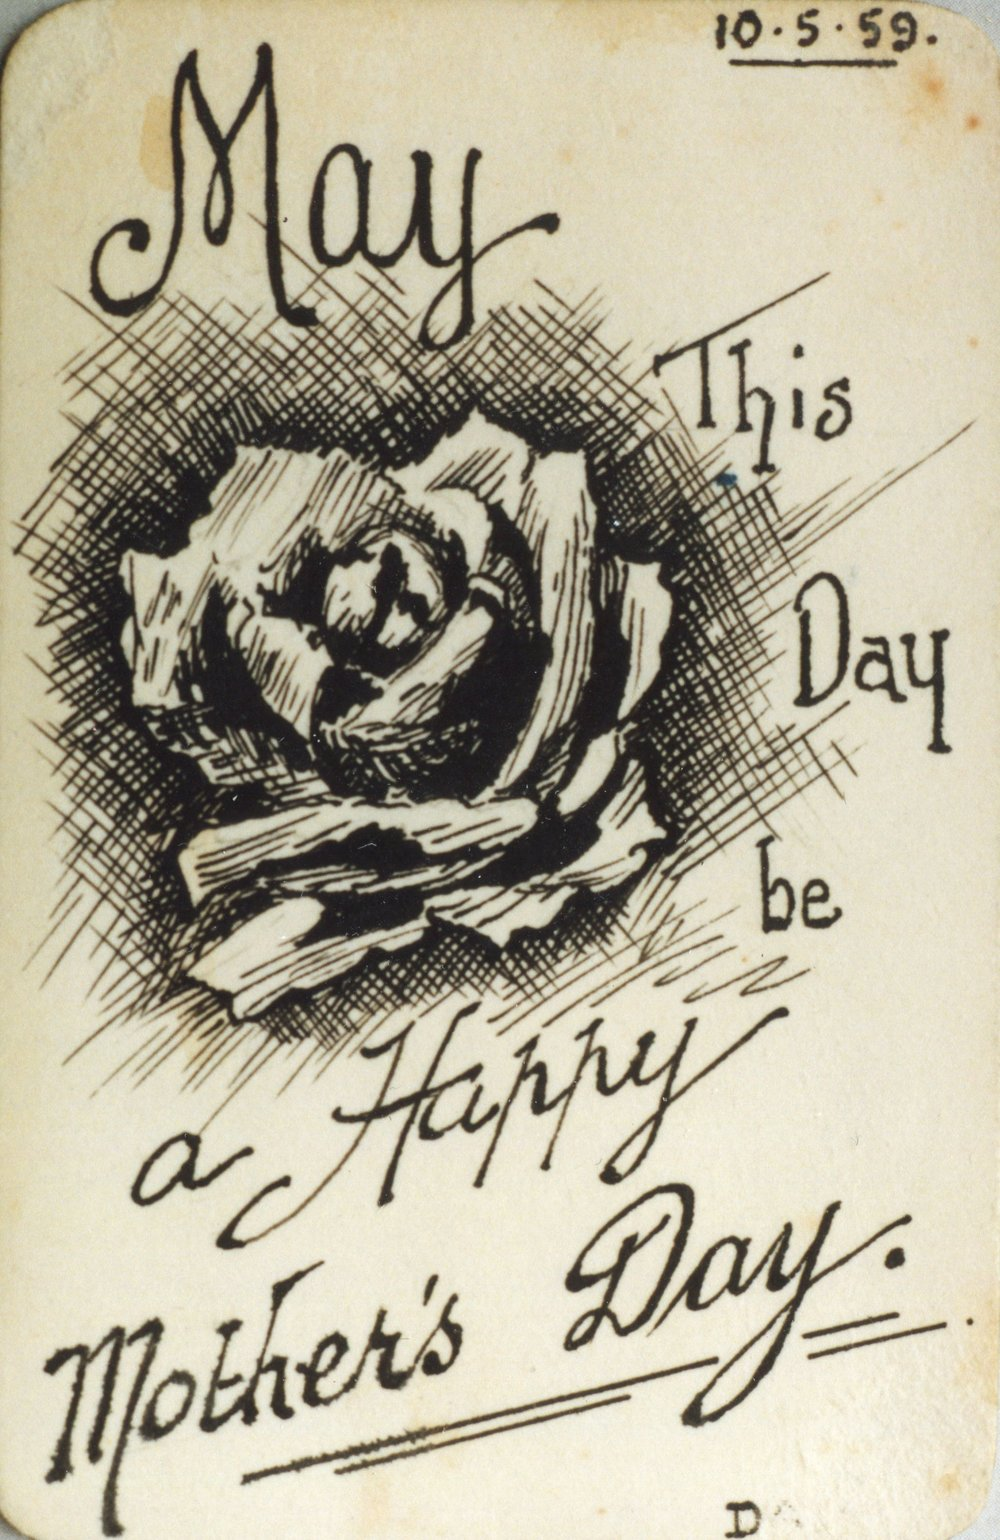 Card drawn by Reg for May, Mother's Day 1959